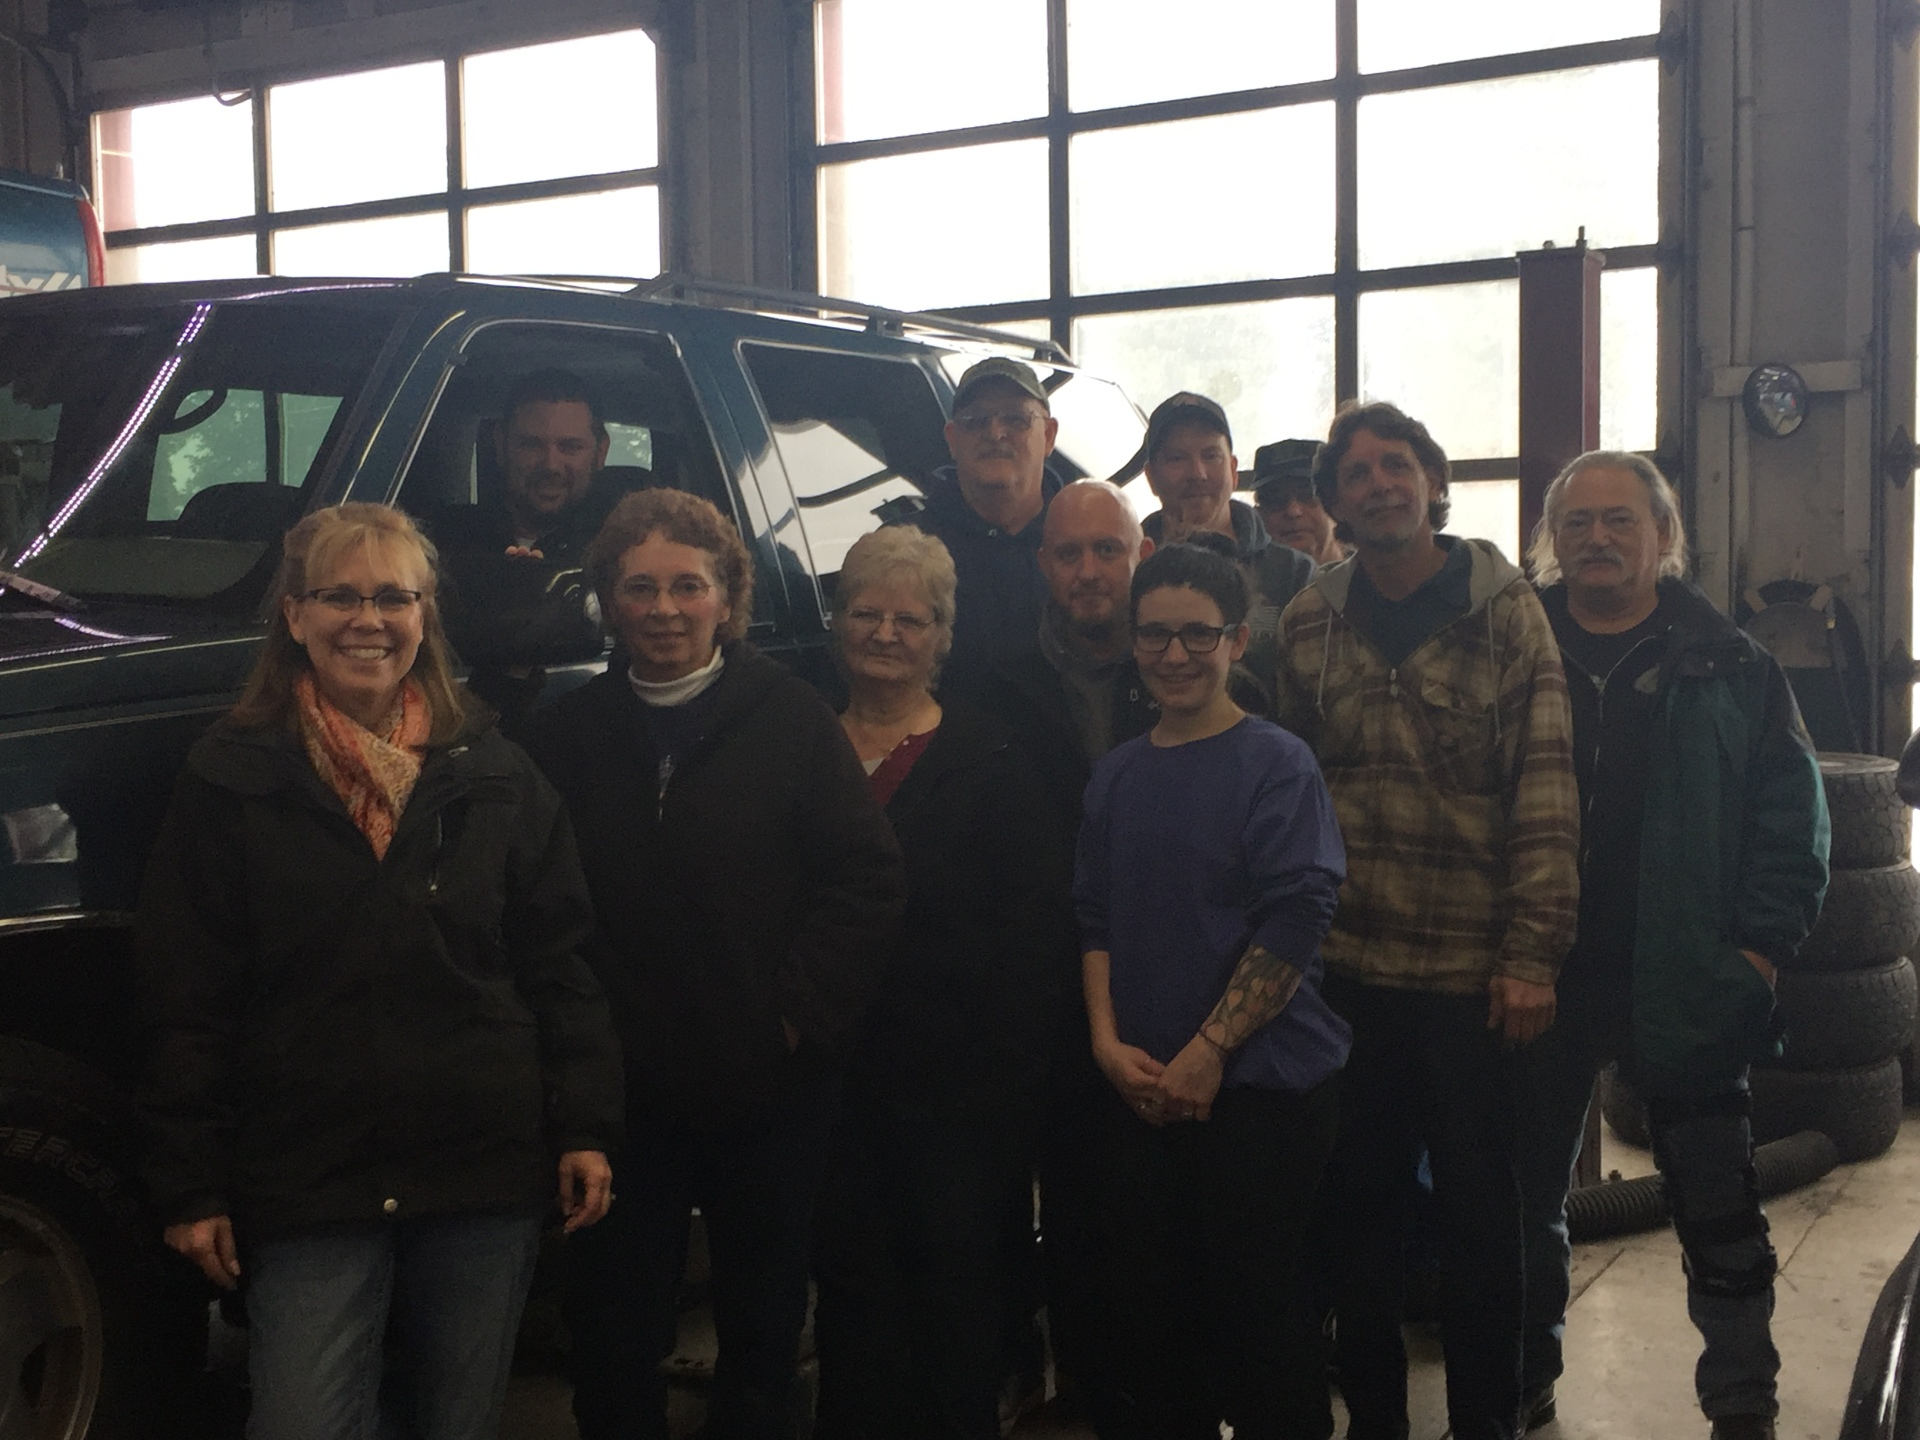 Thank you Doug and everyone at Lloyd's Automotive in Coeur d'Alene for all of your hard work and support!